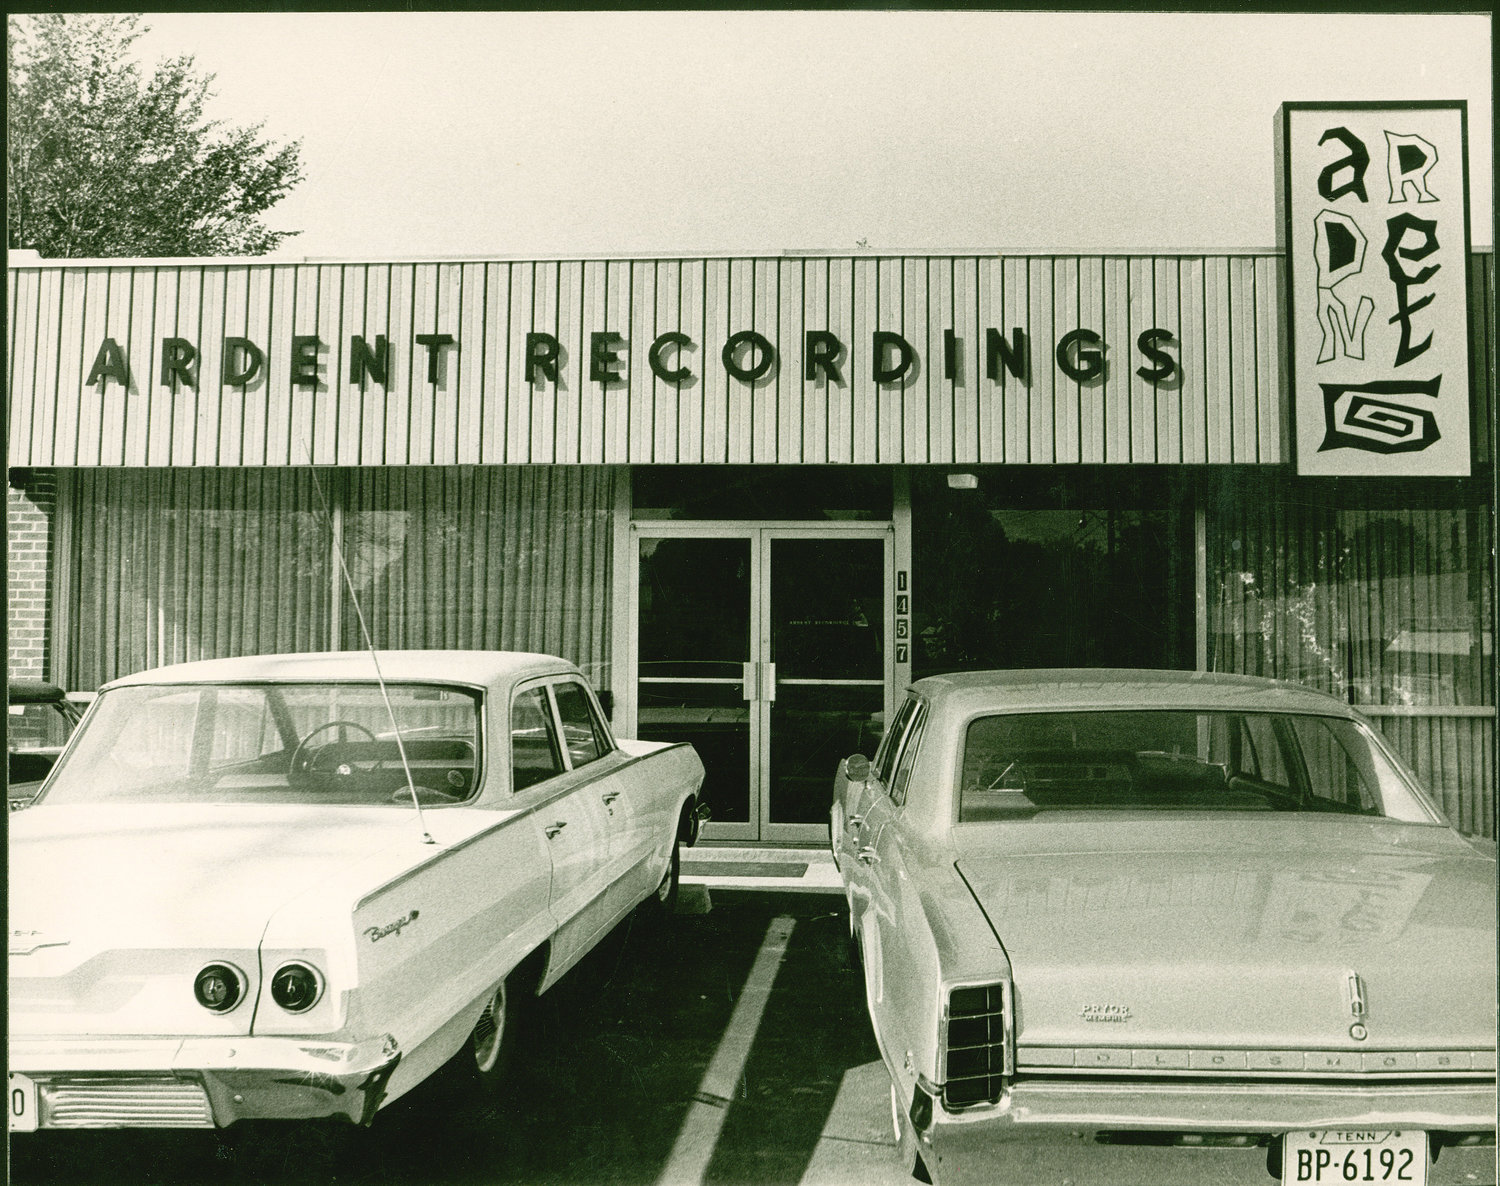 Ardent recordings opened in 1966 at the intersection of National and Bayliss, catty corner from the Sweden Kream that still stands today.